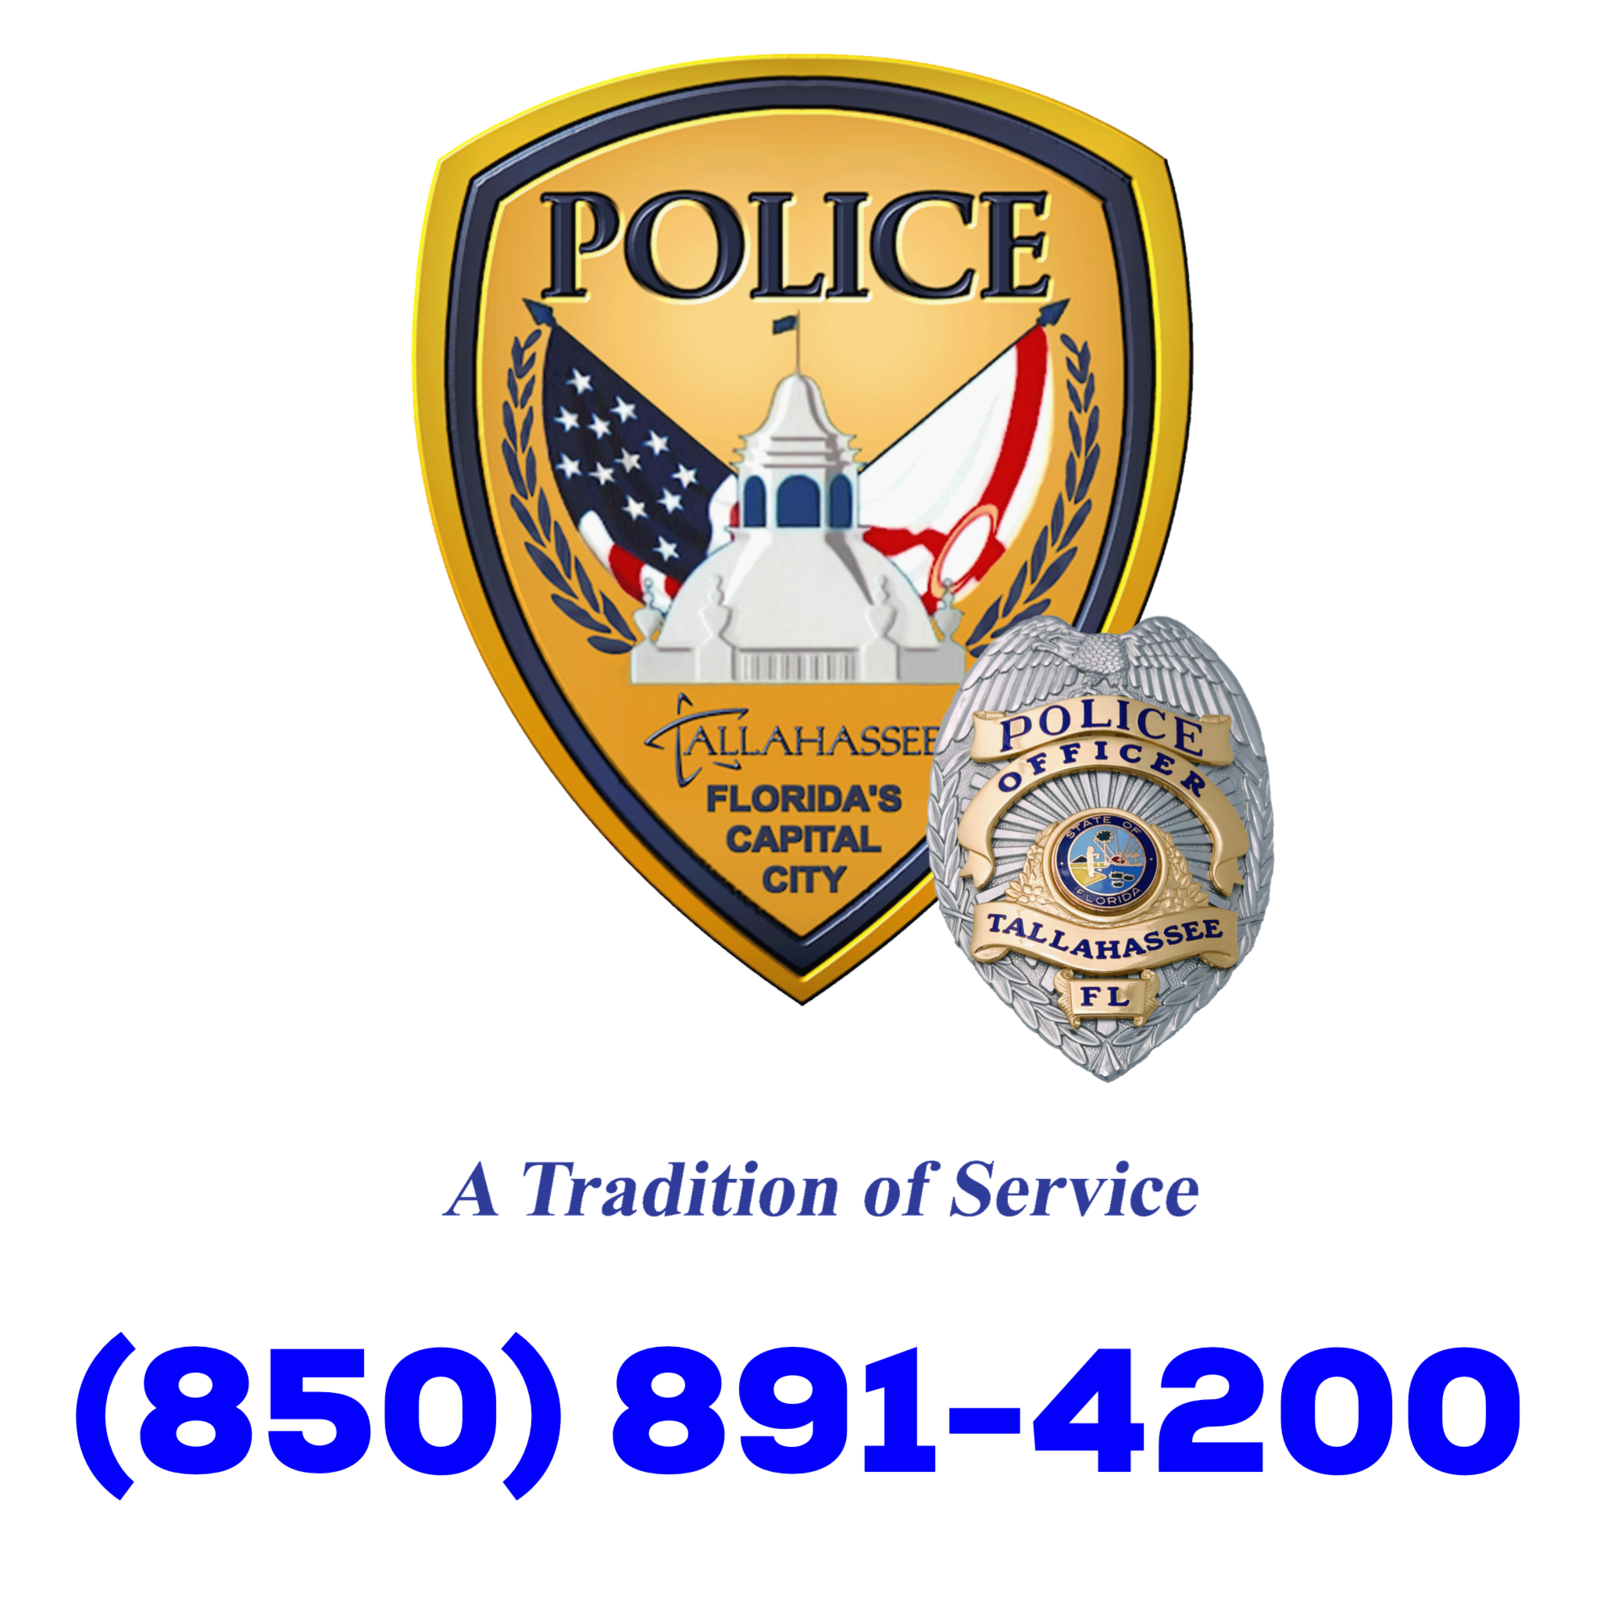 Tallahassee Police Department - 405 Crime and Safety updates